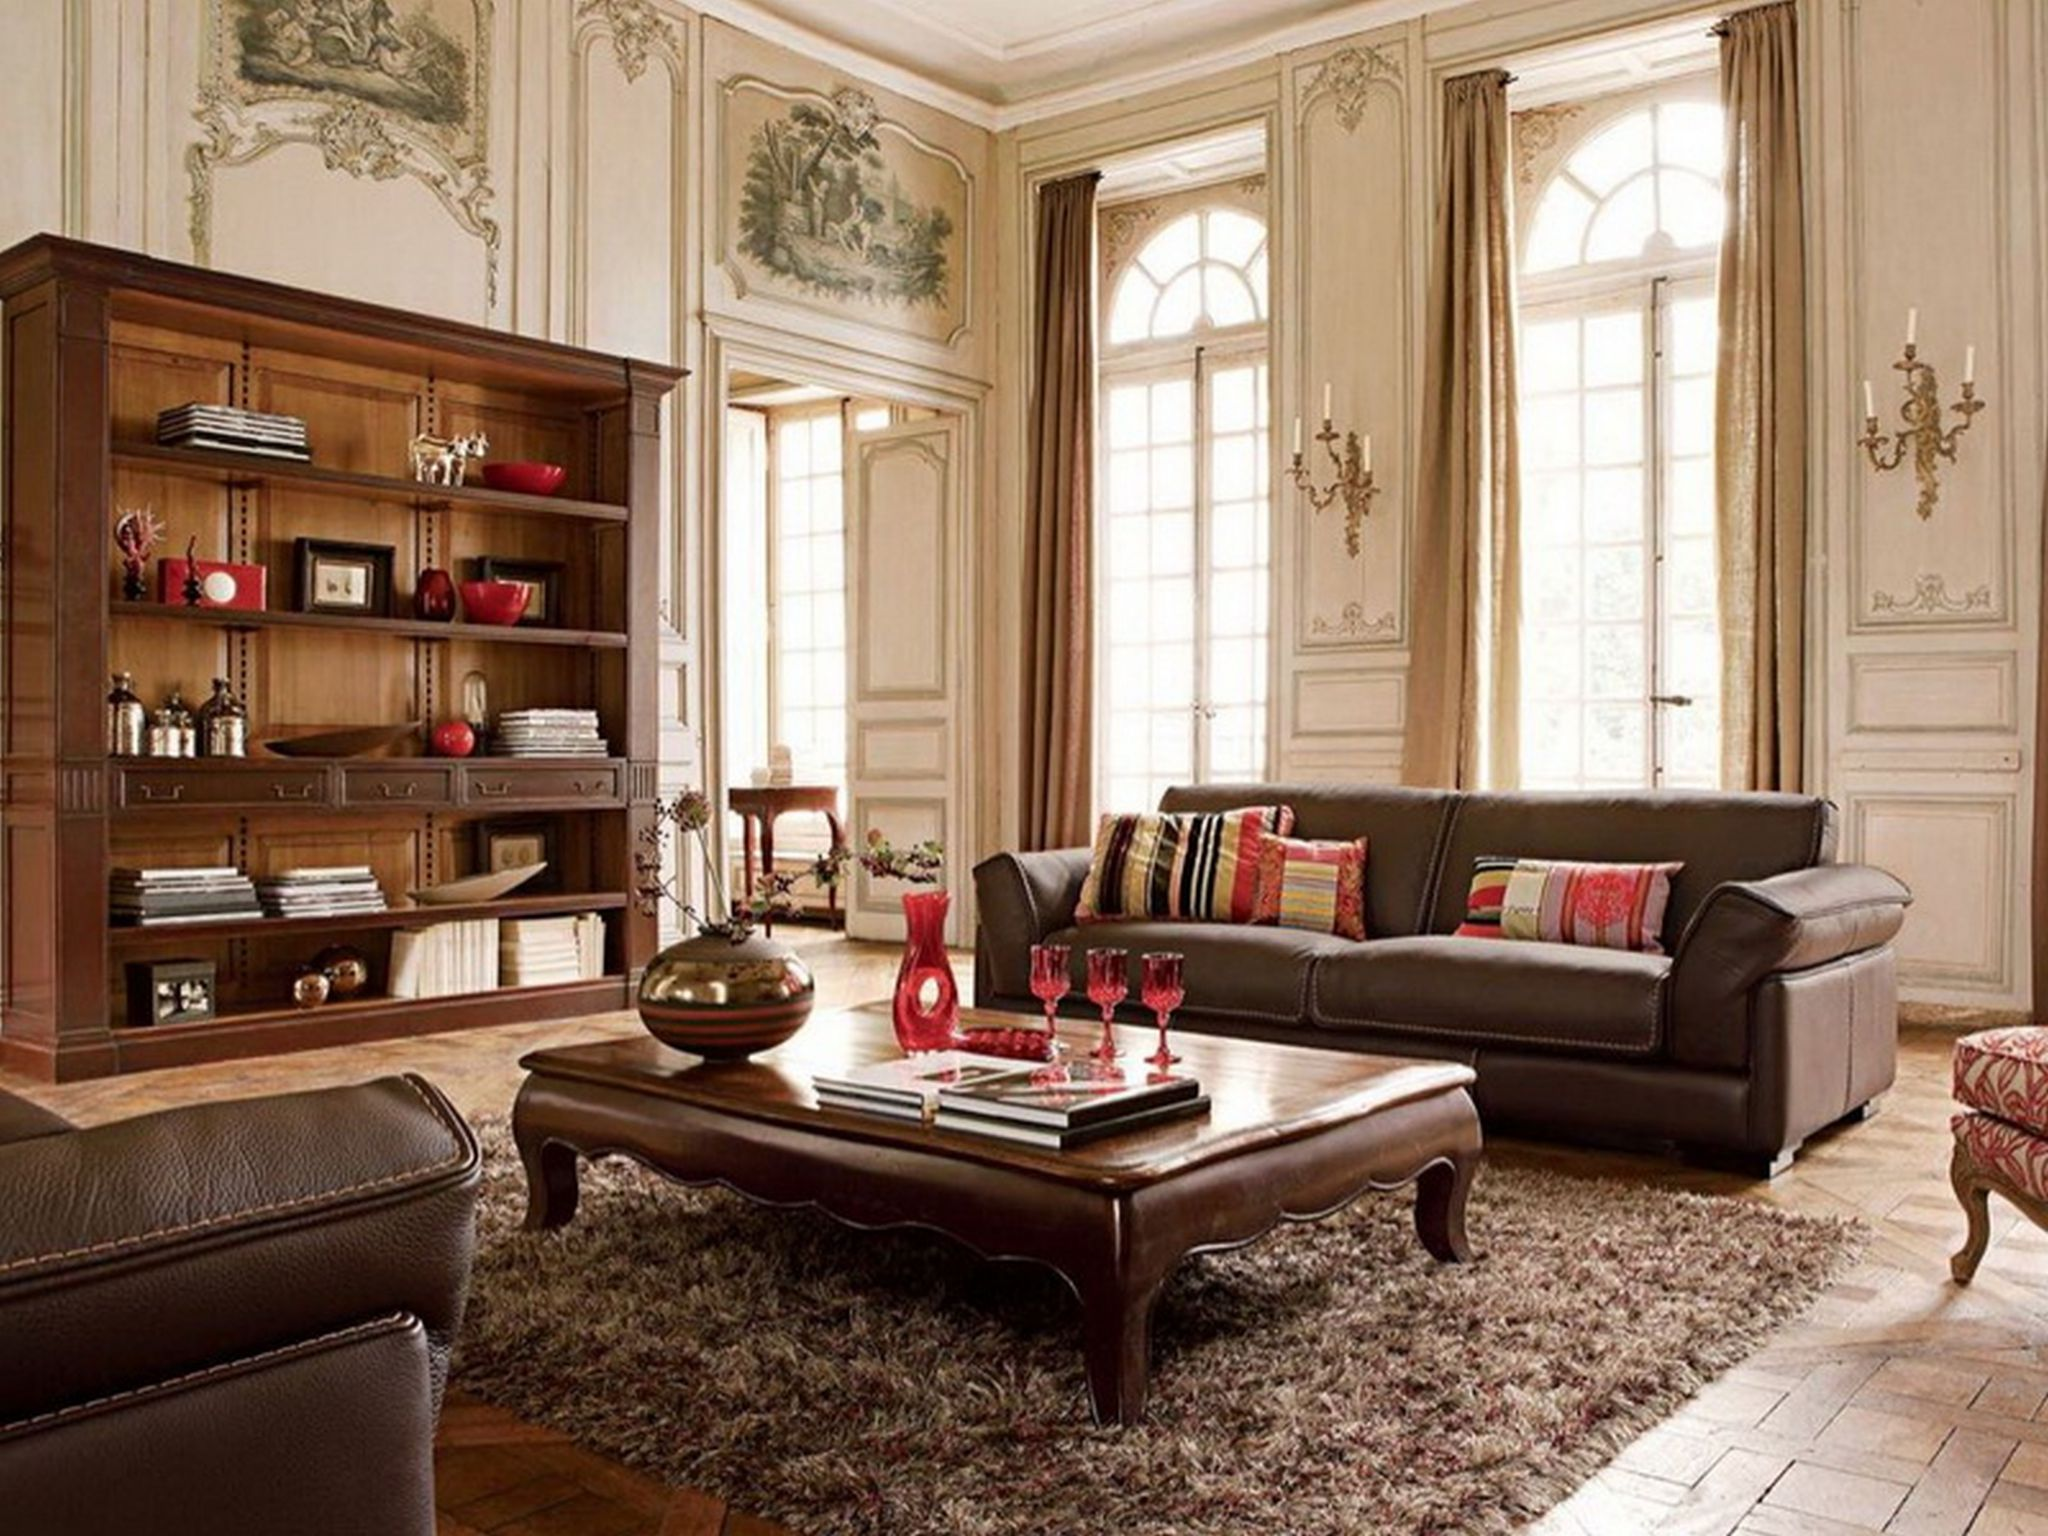 Fantastic Wooden Shelve and Leather Sofa For Rustic Living Area